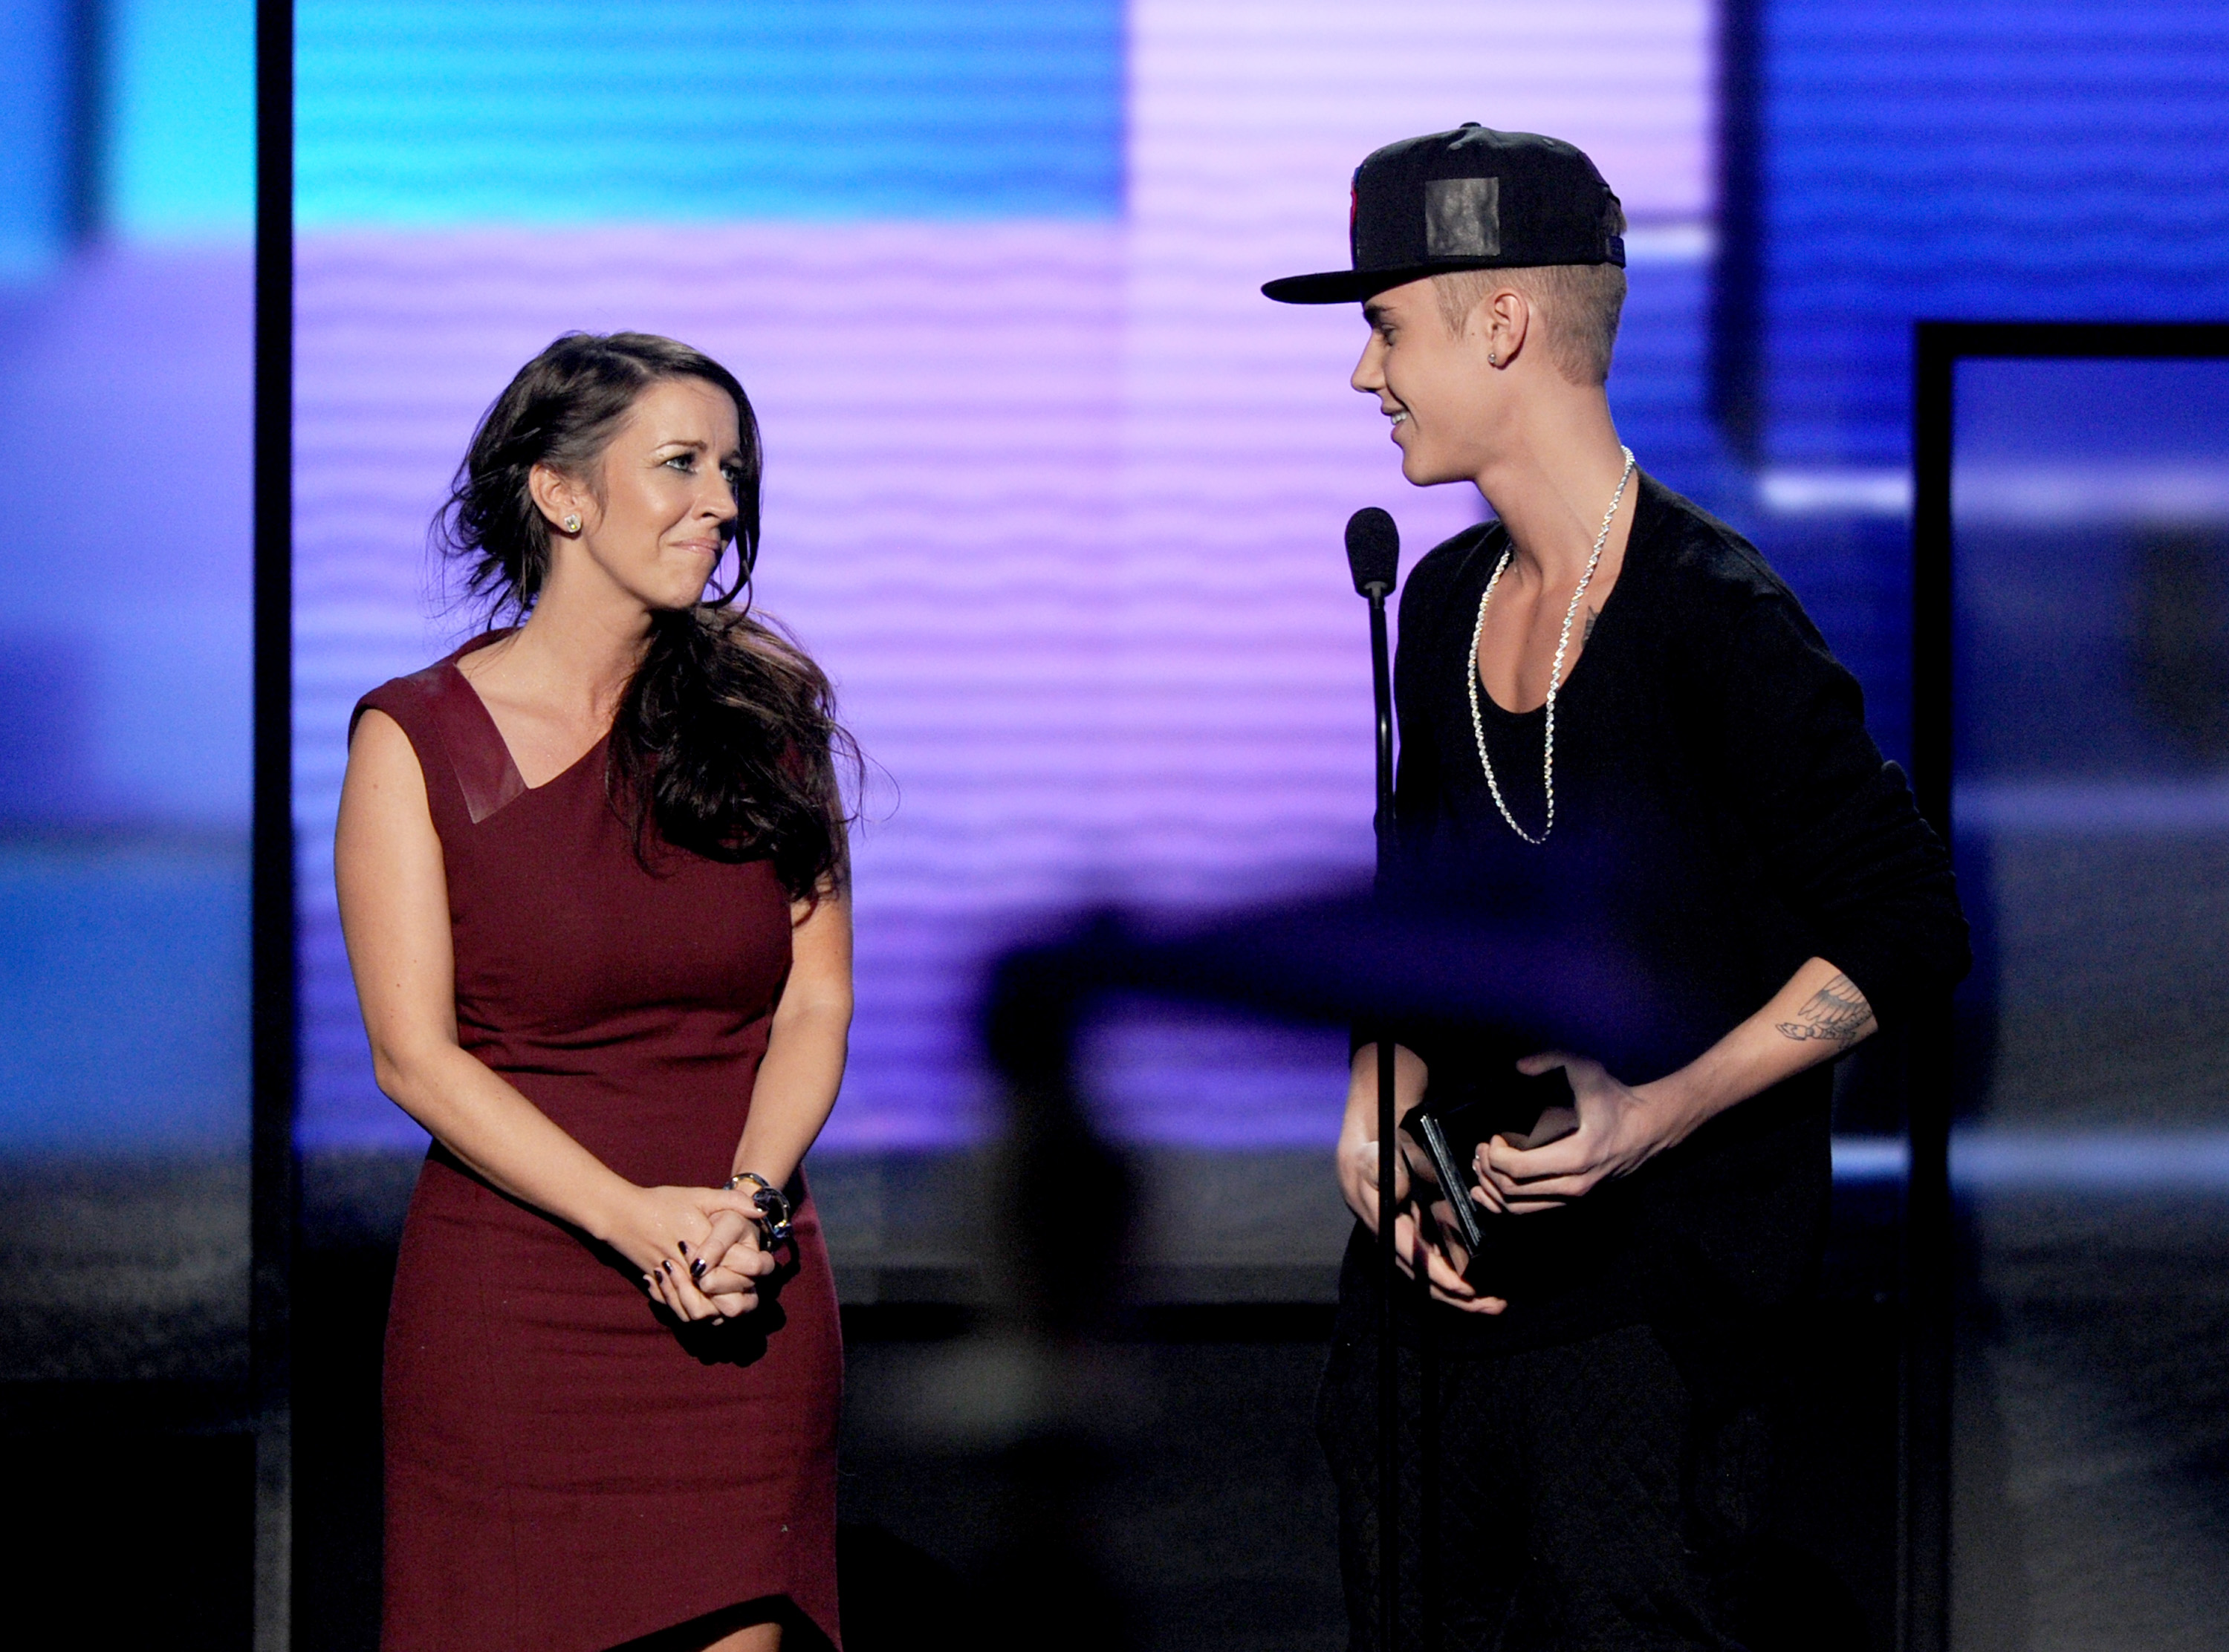 Singer Justin Bieber (R) accepts the award for Artist of the Year with Pattie Malette onstage during the 40th American Music Awards held at Nokia Theatre L.A. Live on November 18, 2012 in Los Angeles, California.